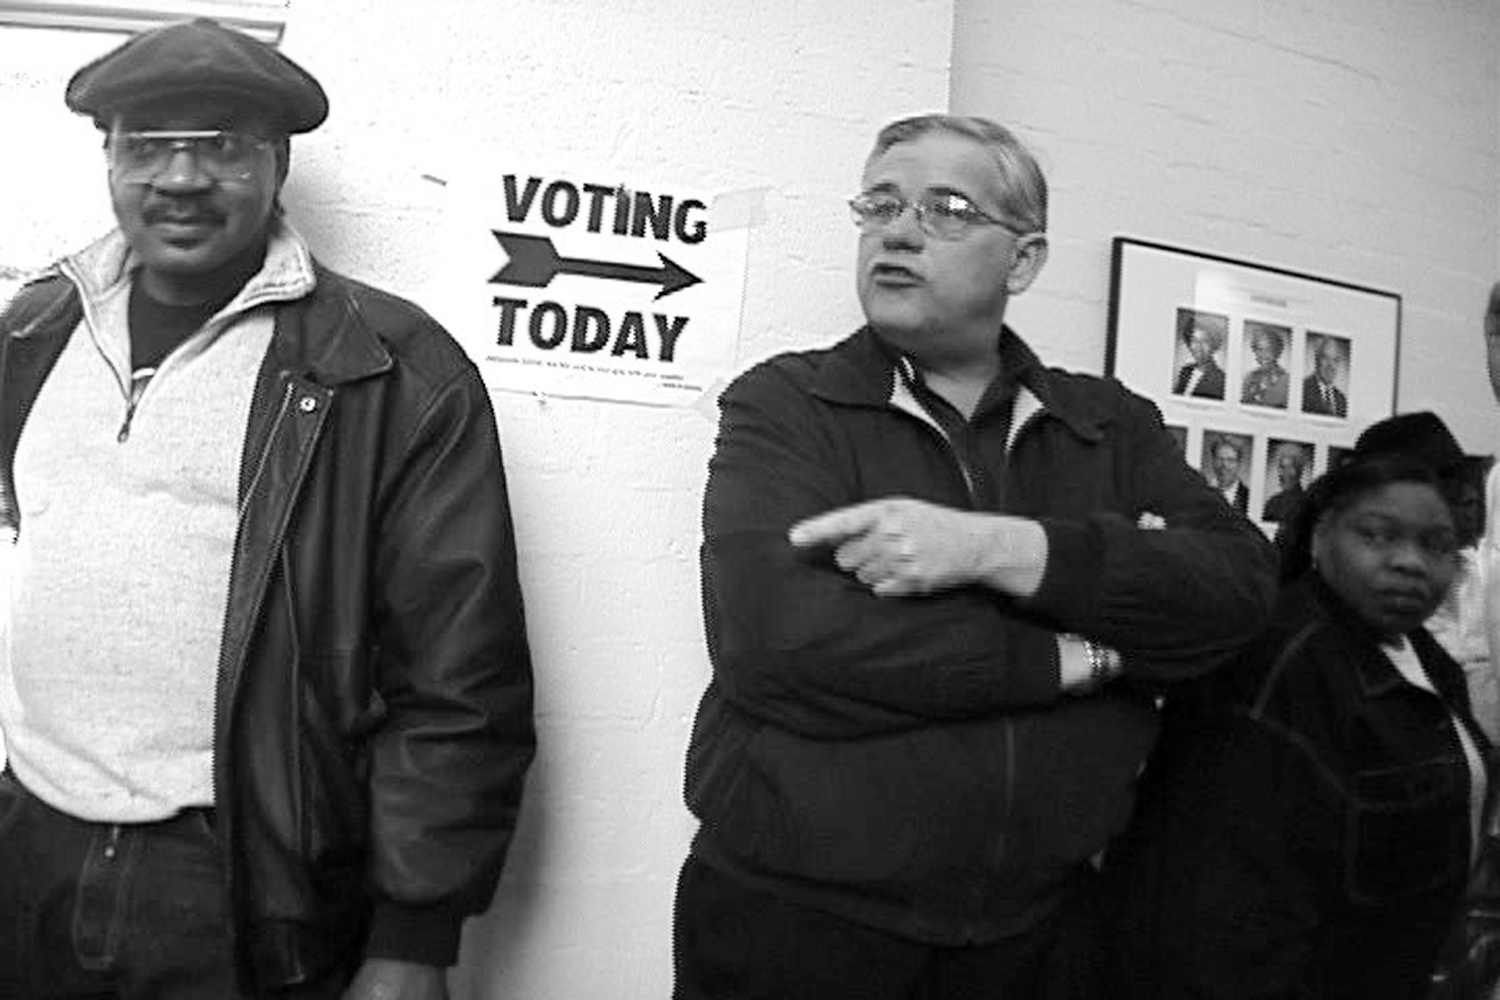 Voters wait in line in Laura Paglin's  No Umbrella - Election Day in the City .